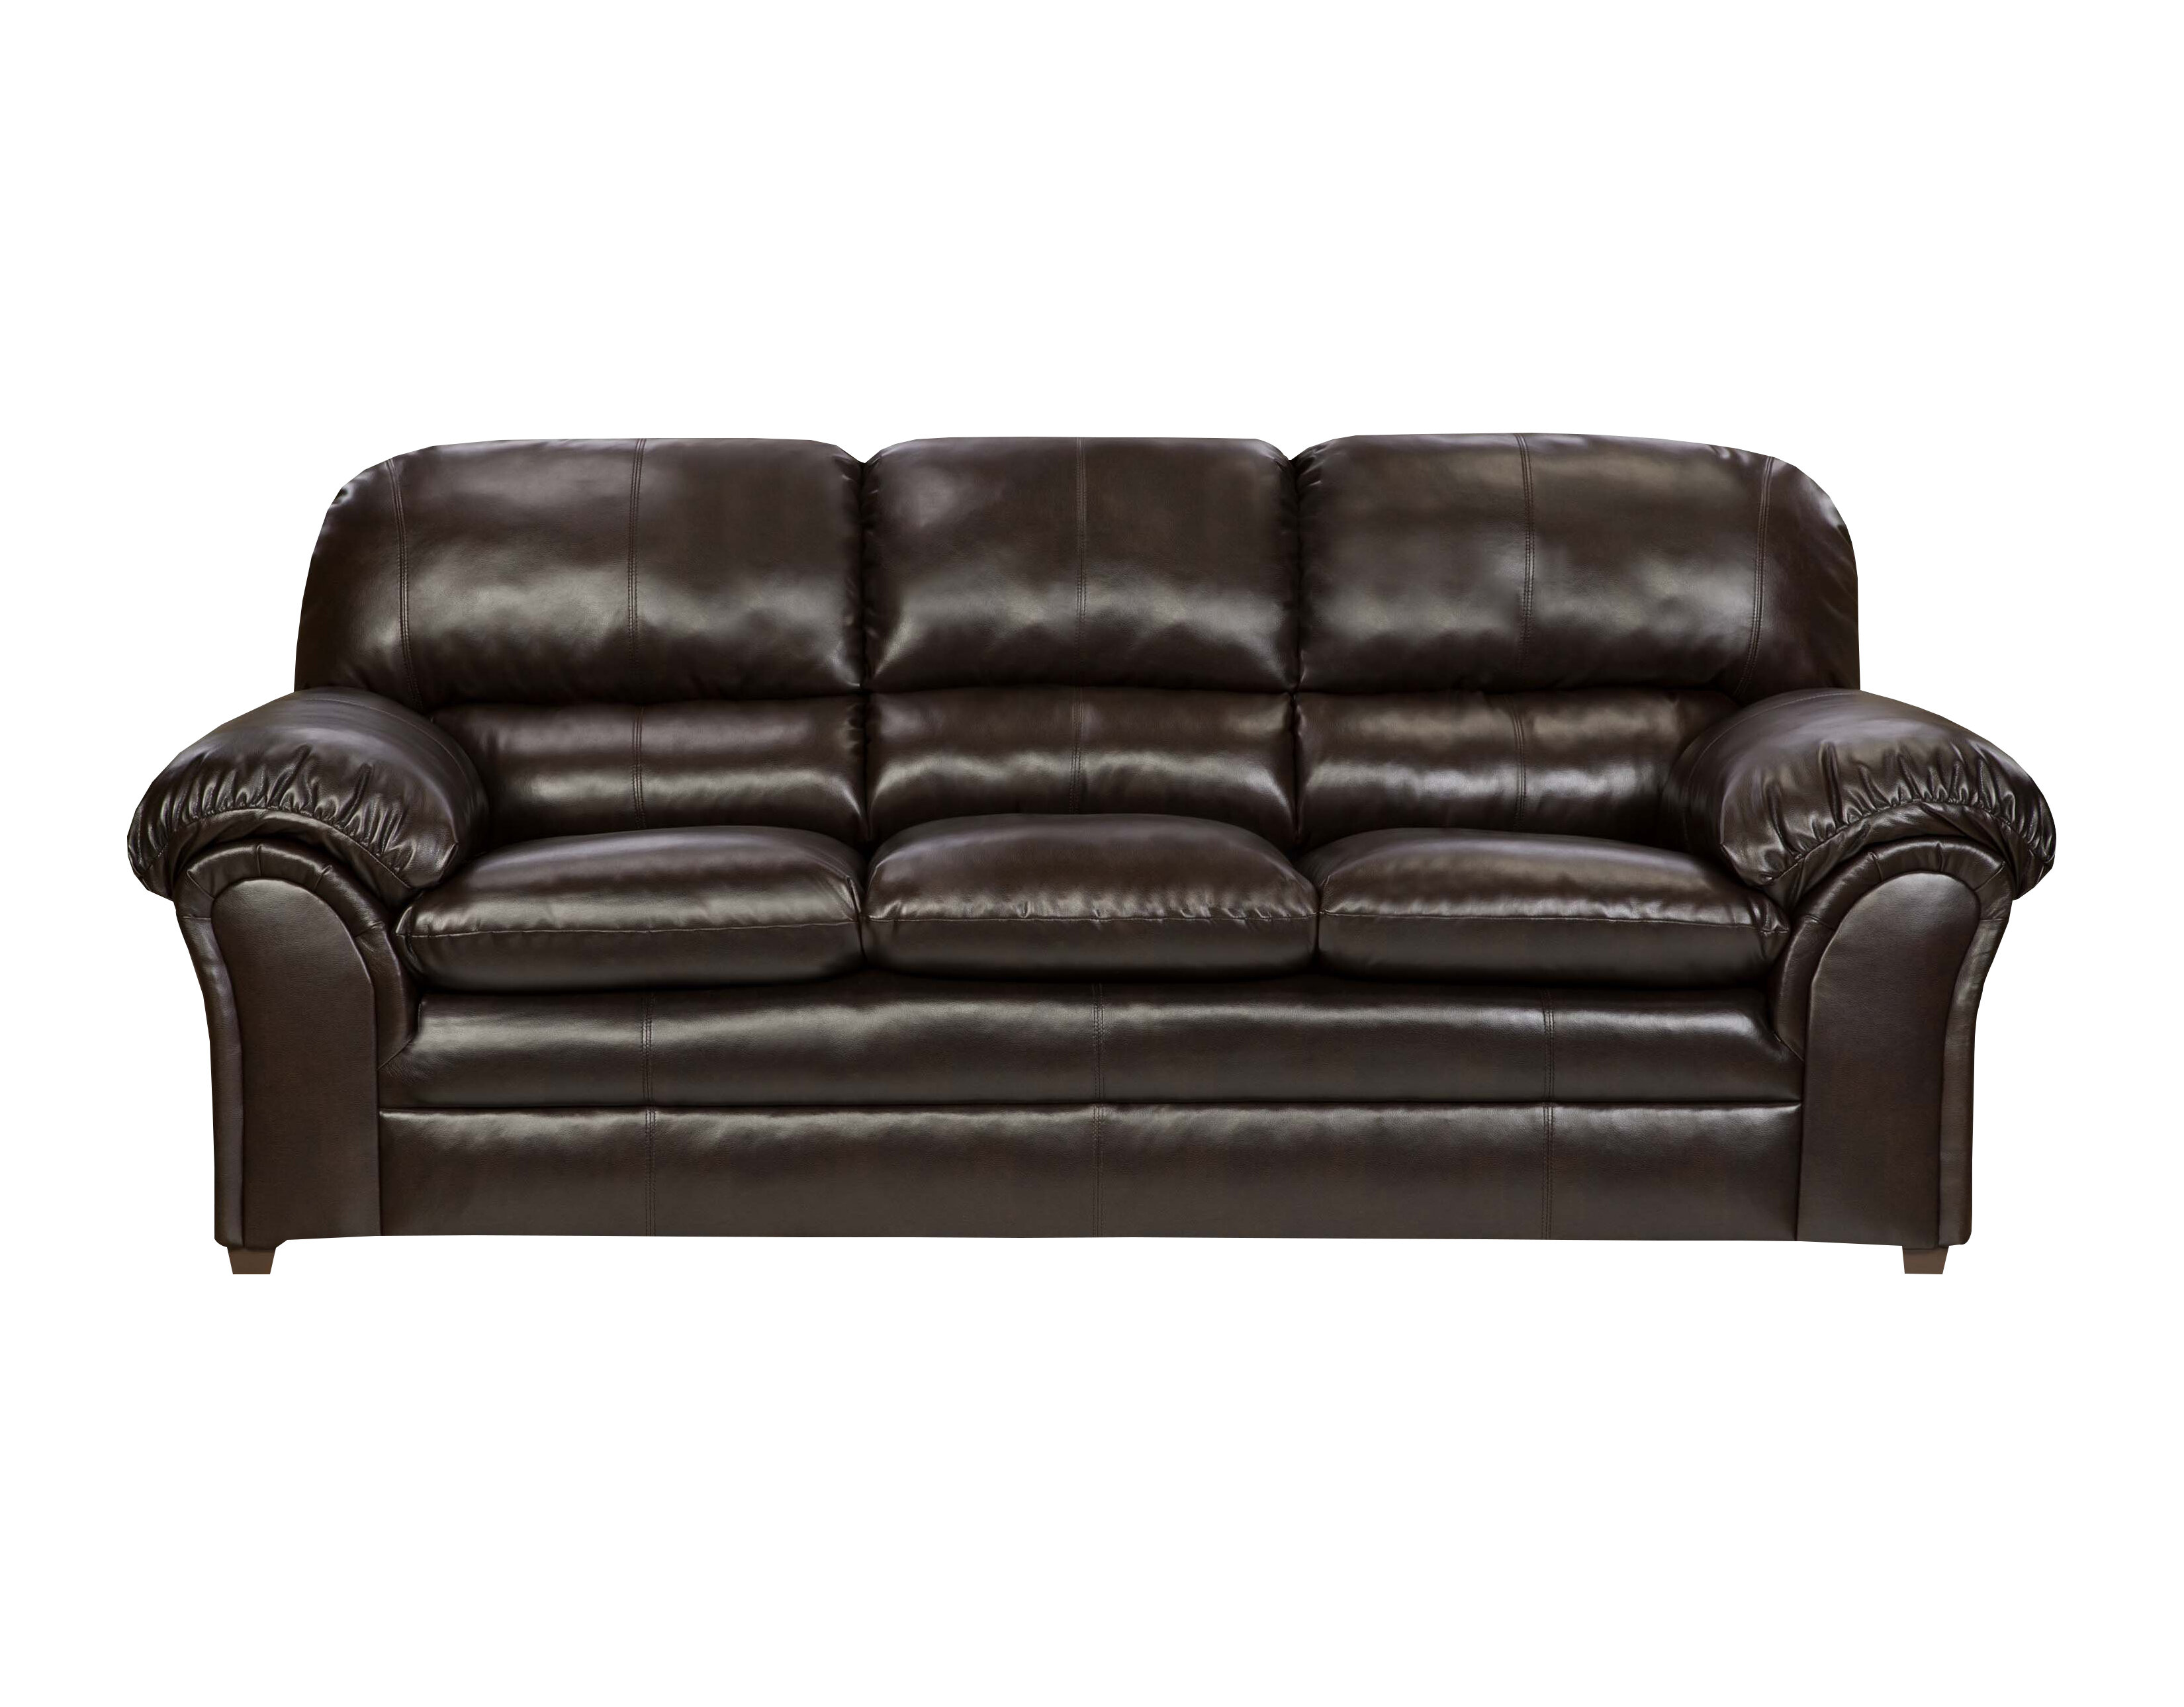 Beau Three Posts Sawyers Simmons Upholstery Sofa U0026 Reviews | Wayfair